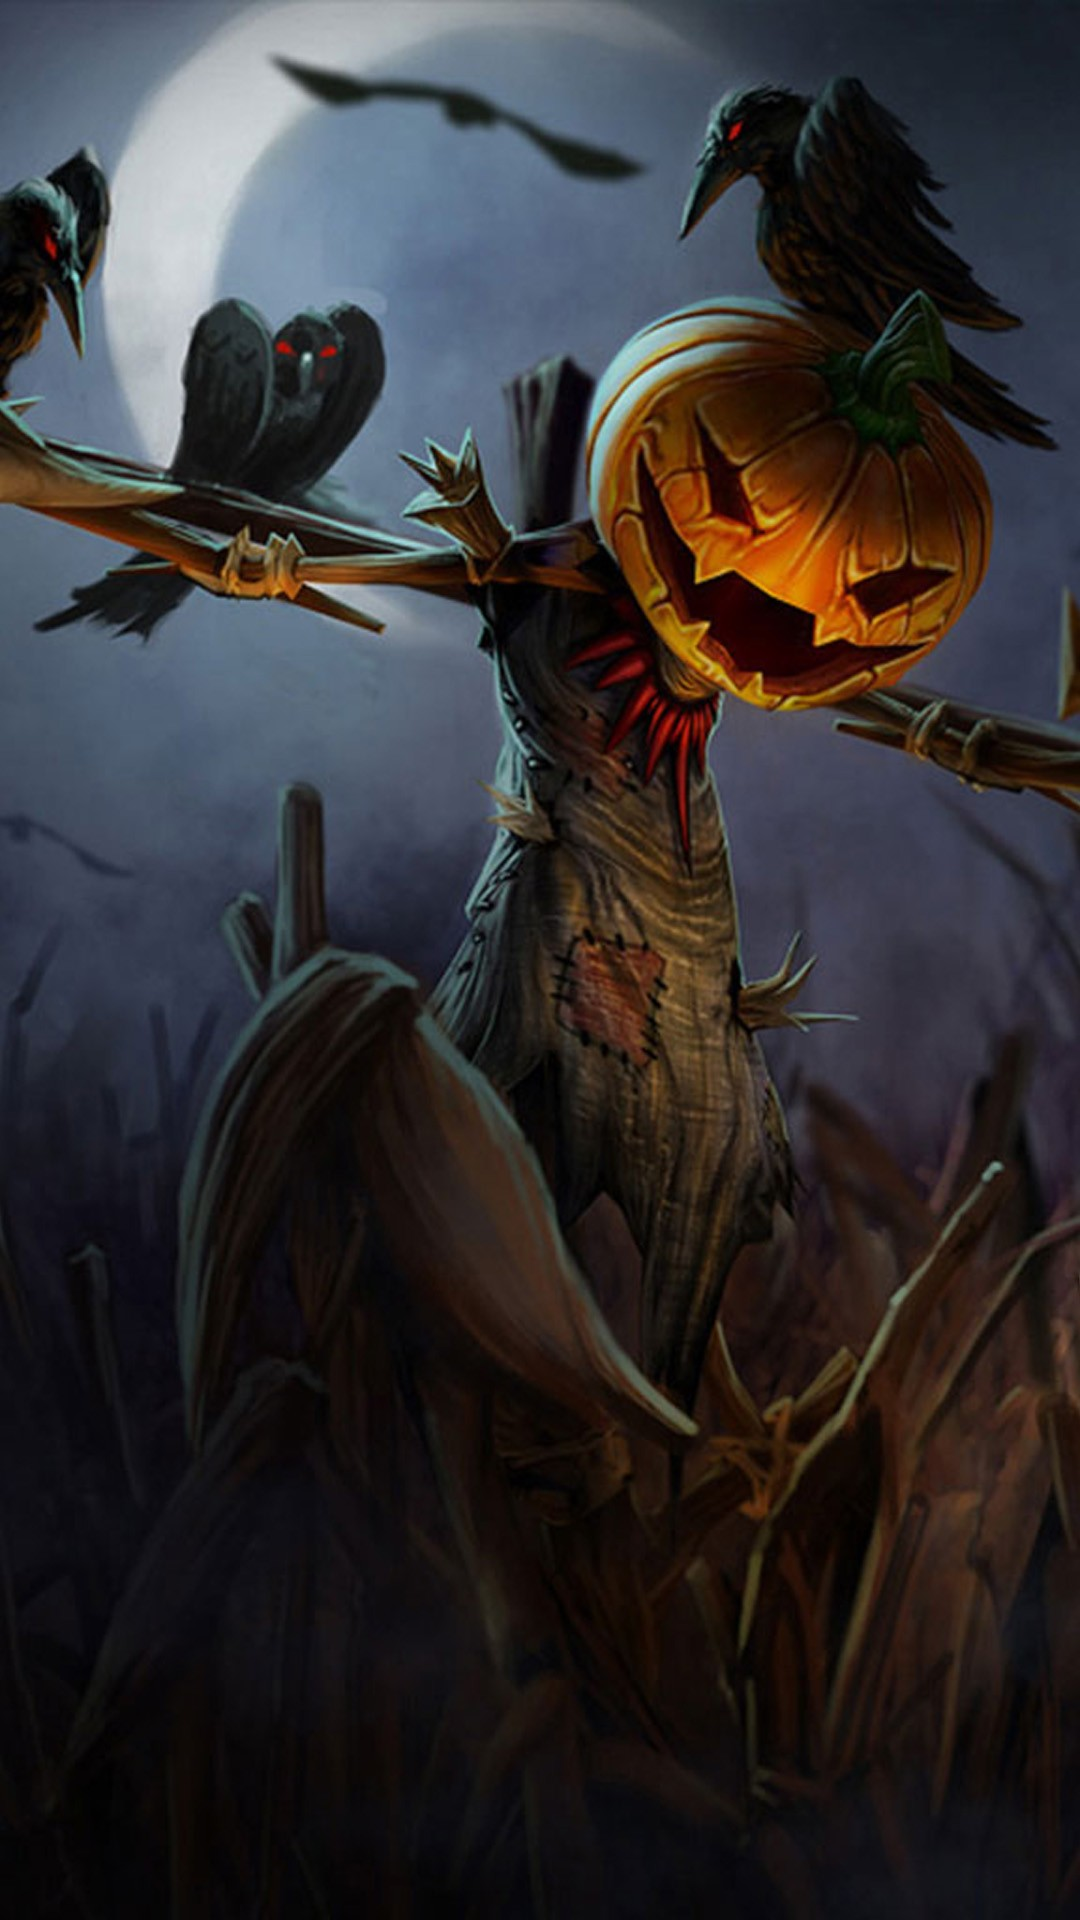 Scary wallpaper download free backgrounds for desktop - Scary halloween pumpkin wallpaper ...